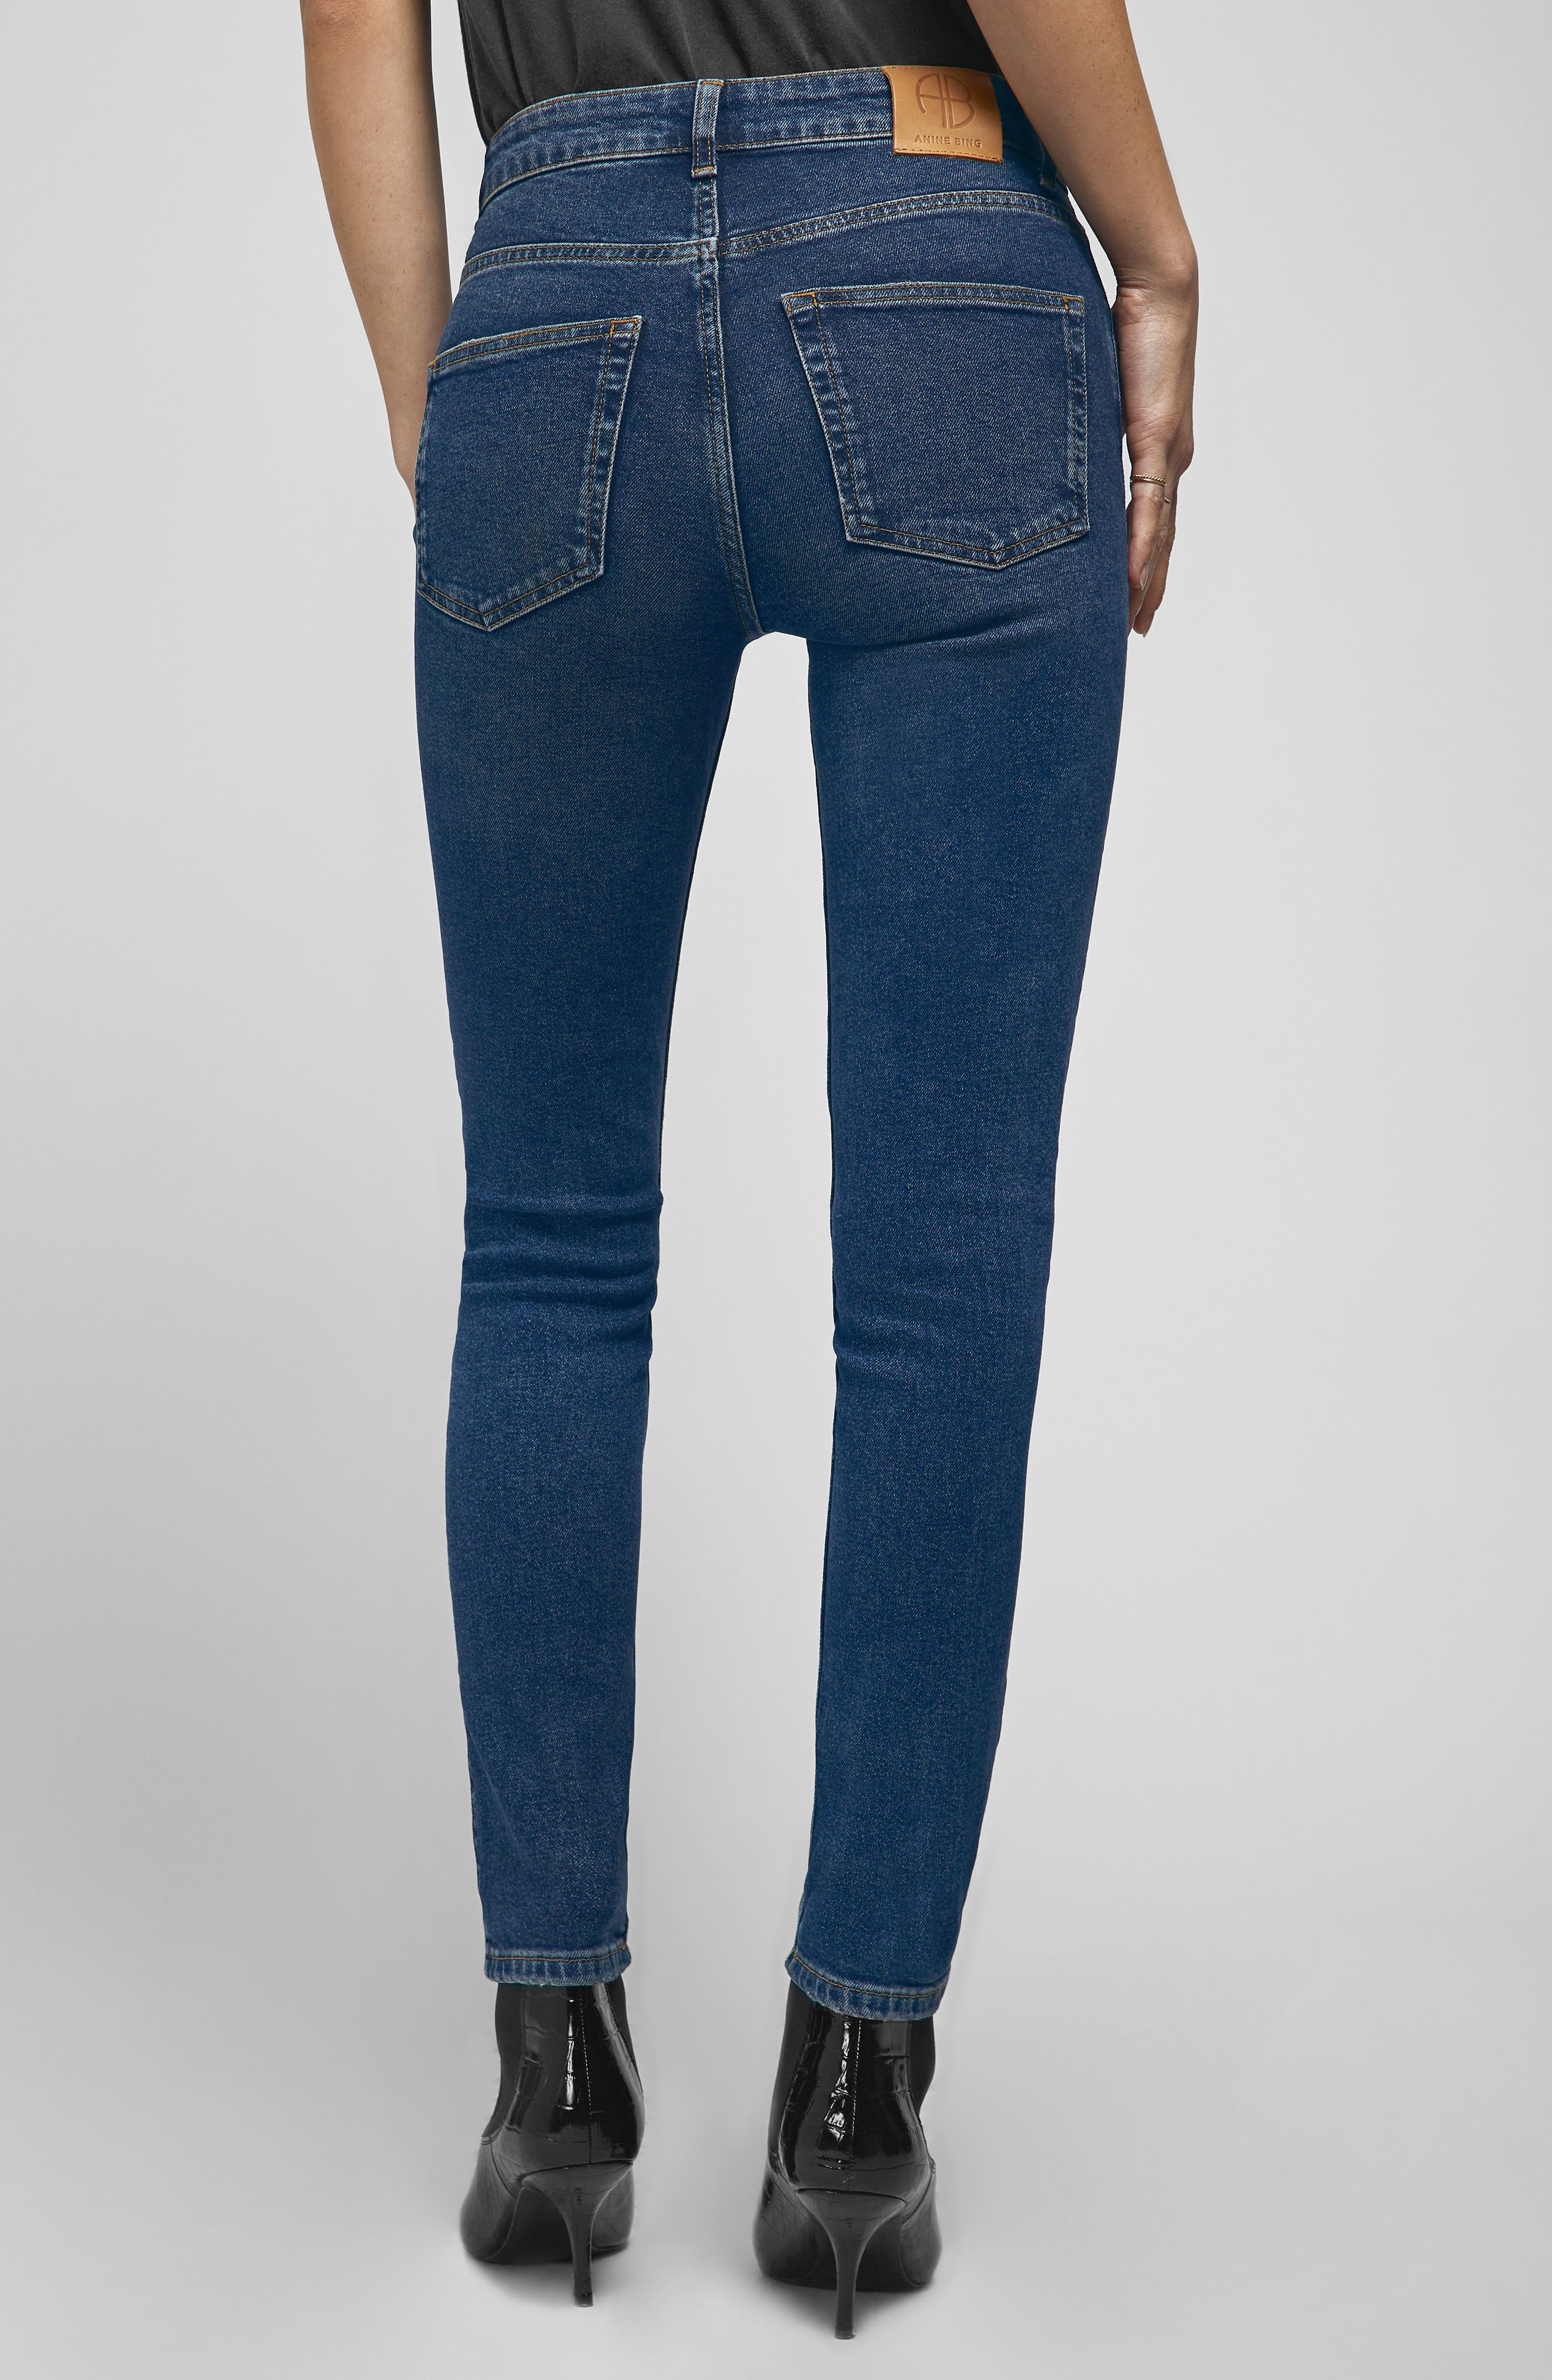 ANINE BING,                             High Waist Skinny Jeans,                             Alternate thumbnail 2, color,                             NAVY